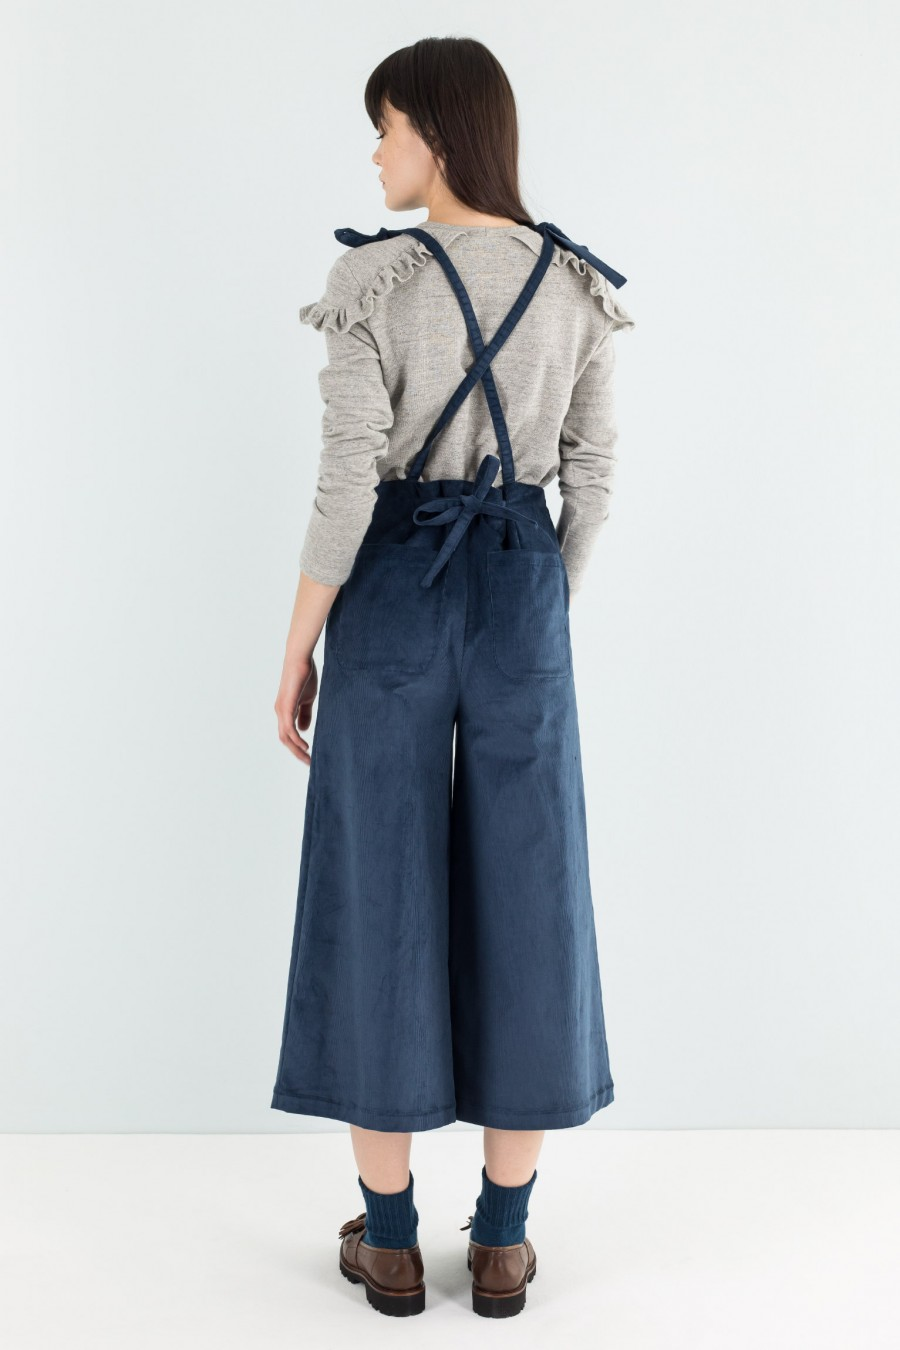 Navy blue velvet overalls with palazzo pants